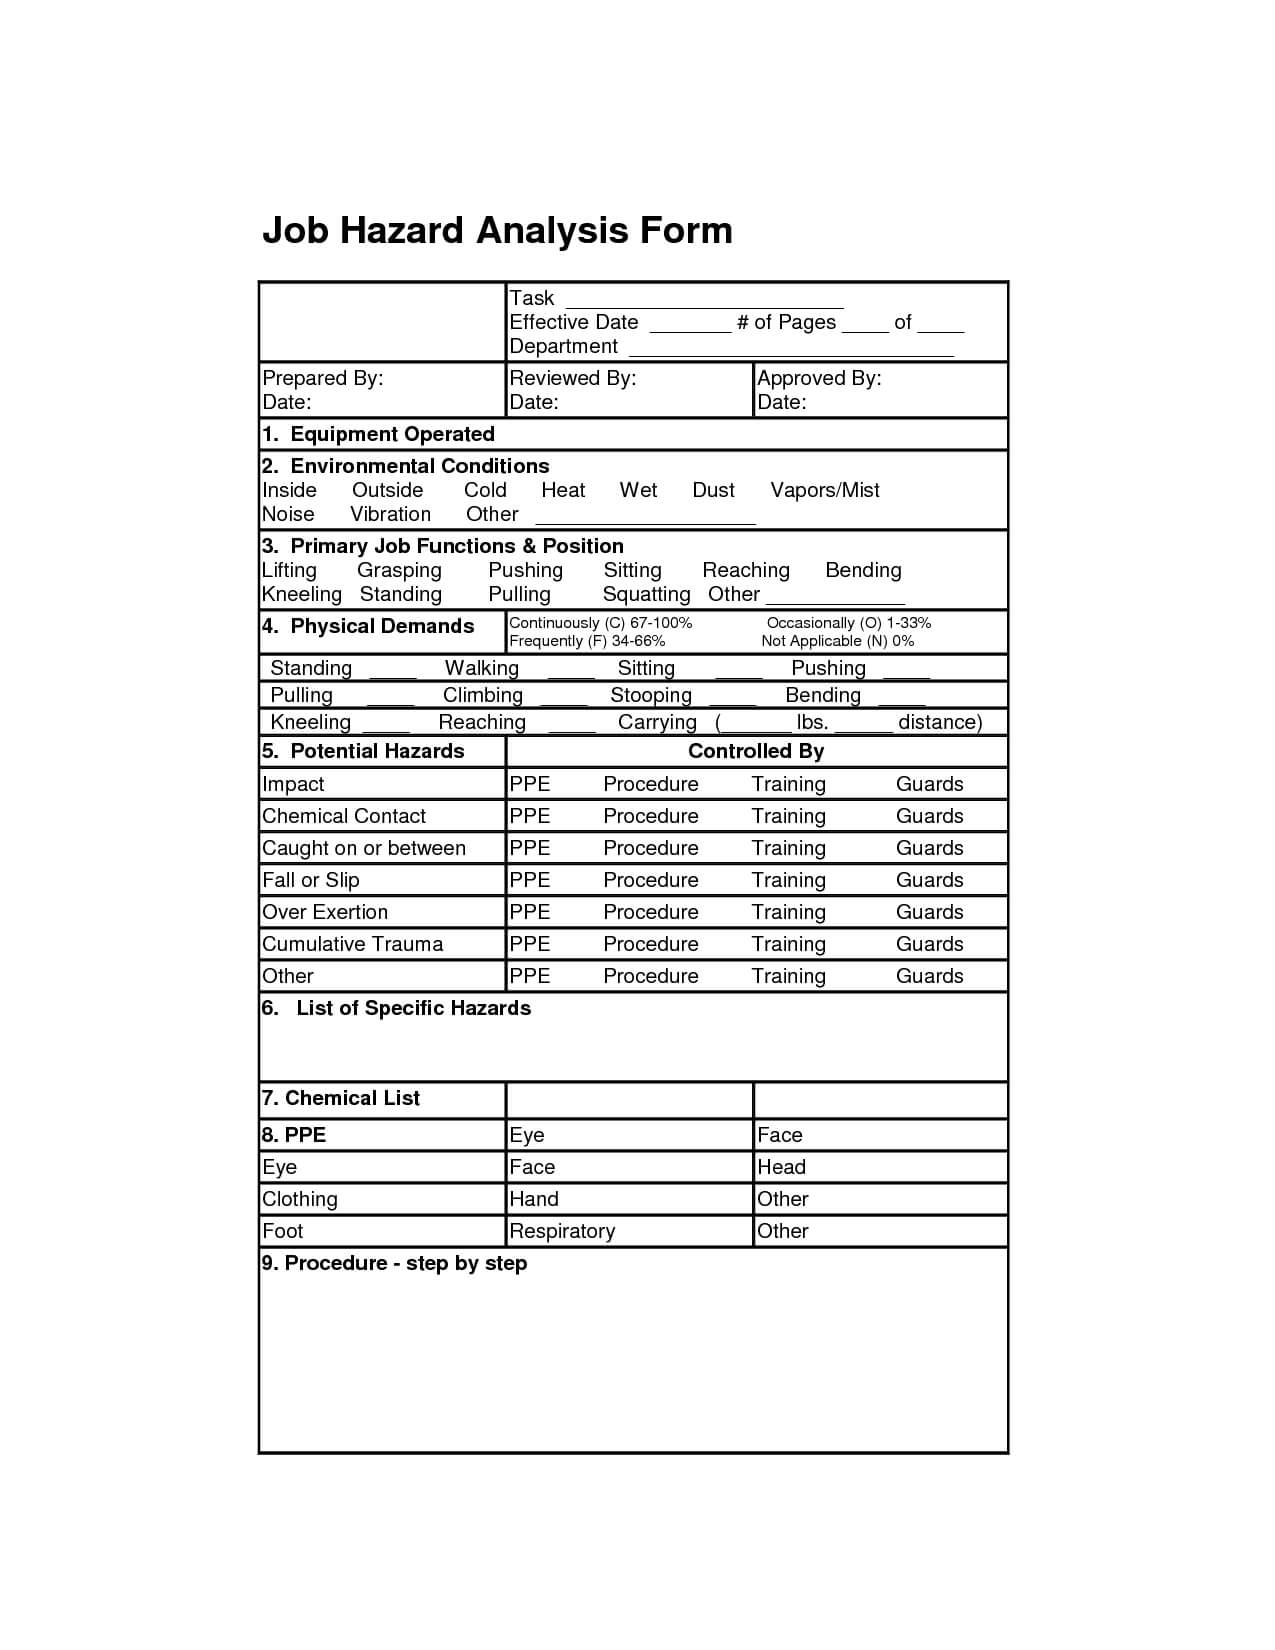 Job Hazard Analysis Form | Job Analysis Forms | Job Analysis Inside Safety Analysis Report Template